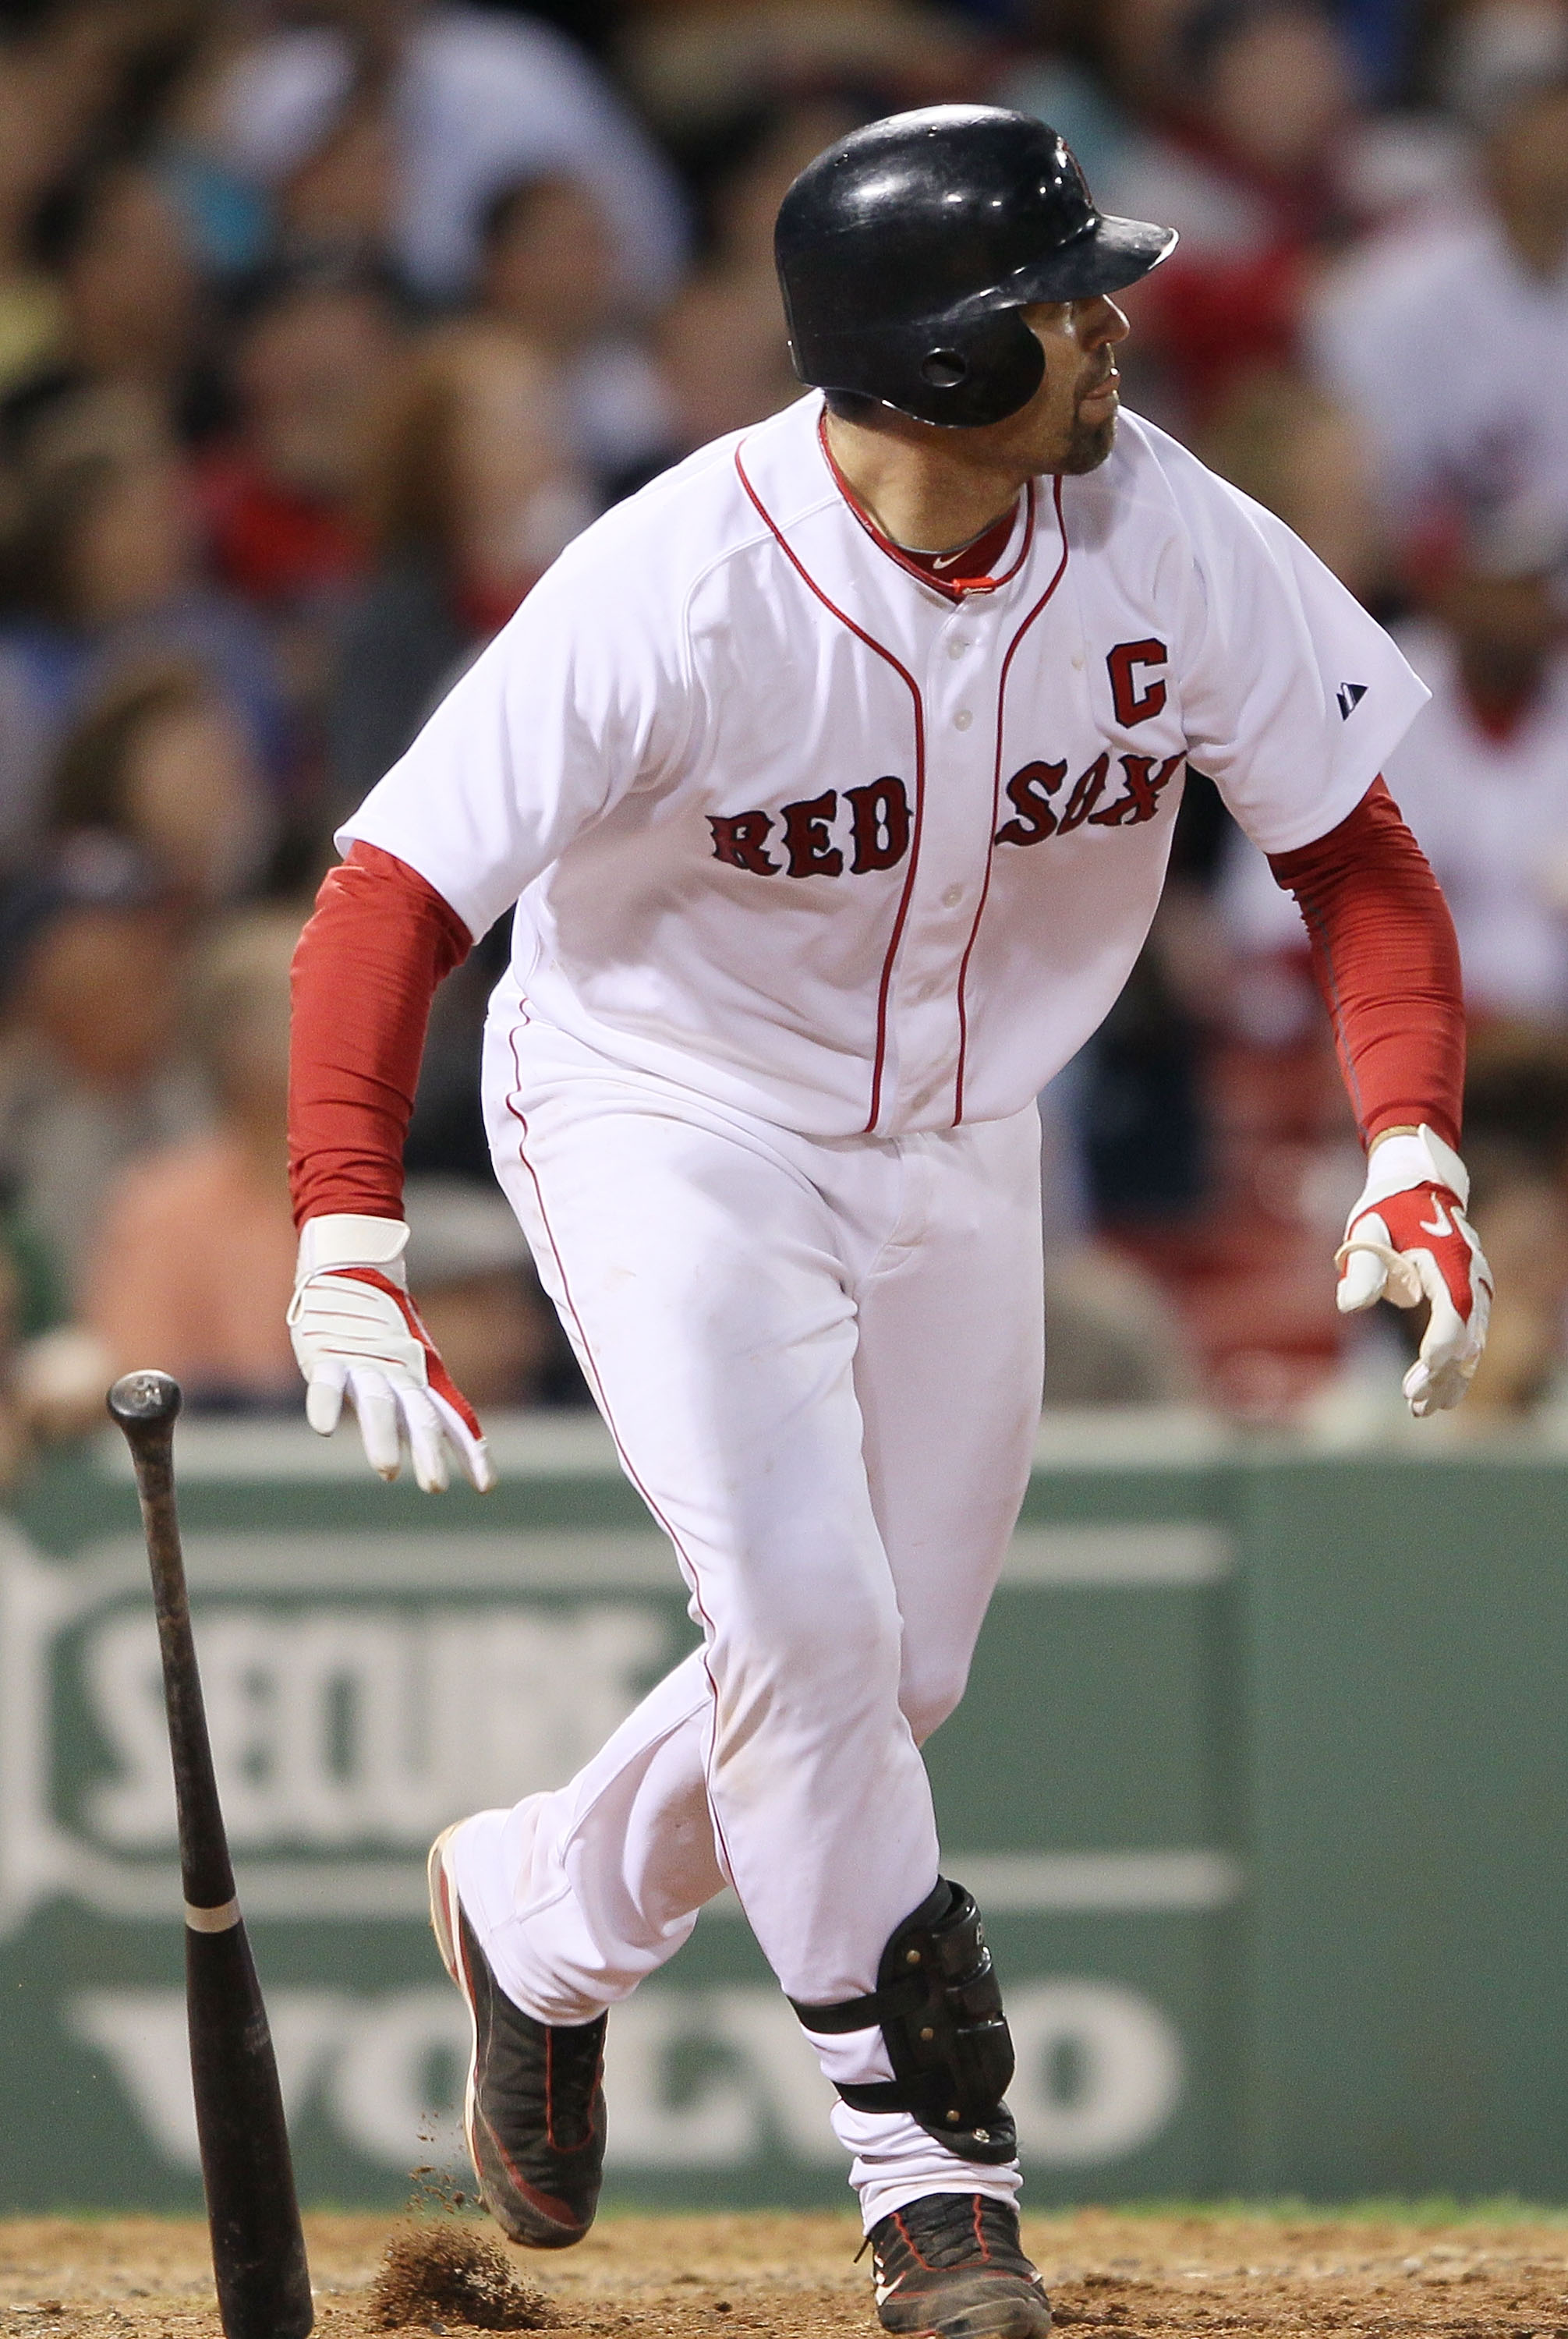 BOSTON - MAY 27:  Jason Varitek #33 of the Boston Red Sox hits an RBI double in the sixth inning against the Kansas City Royals on May 27, 2010 at Fenway Park in Boston, Massachusetts.  (Photo by Elsa/Getty Images)